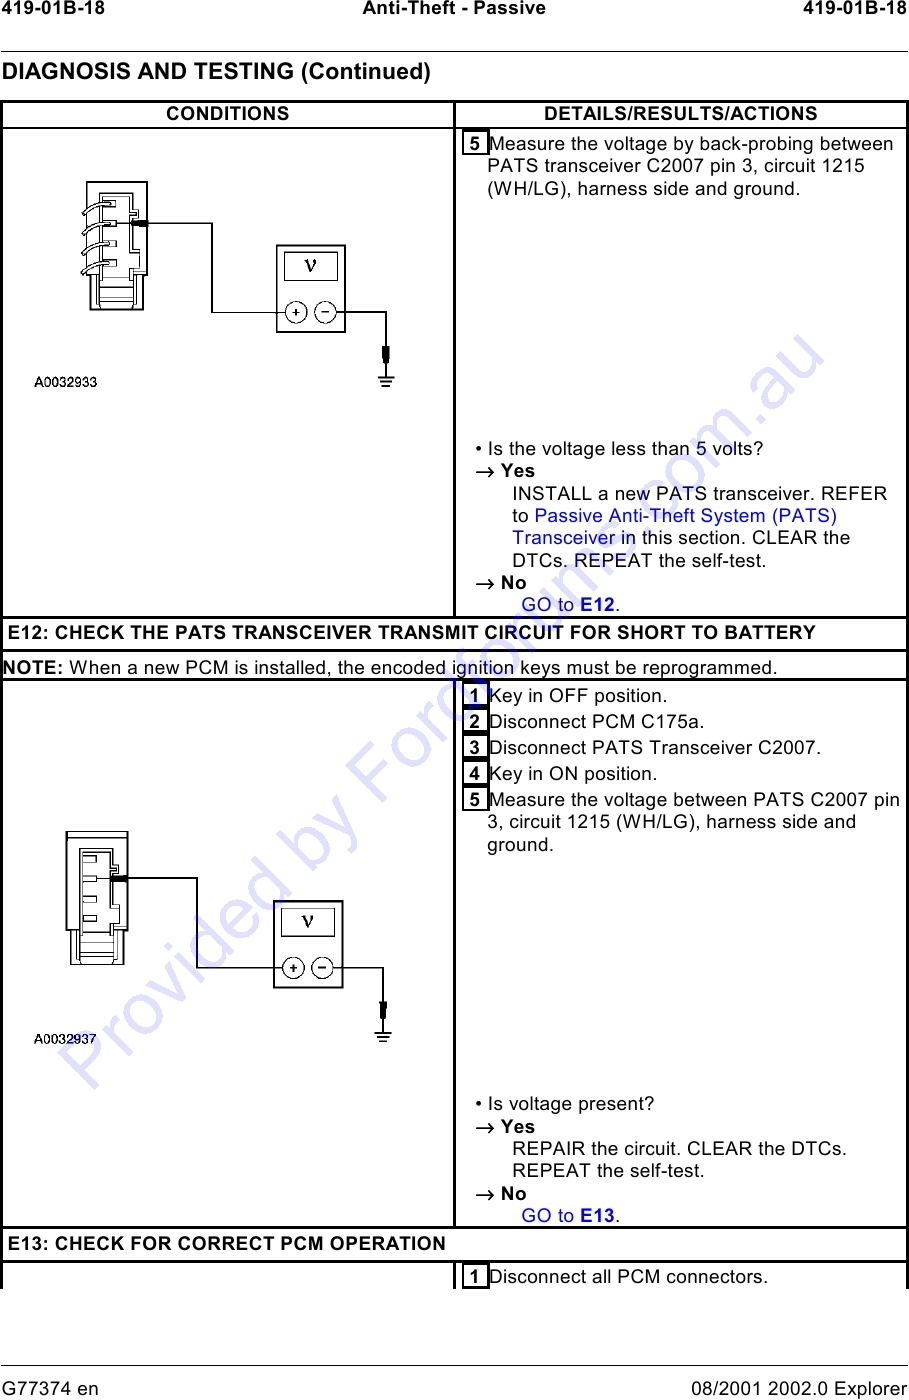 Ford Pats Wiring Diagrams Library 2002 Explorer Fuel Pump Further Diagram In Addition 2000 Taurus